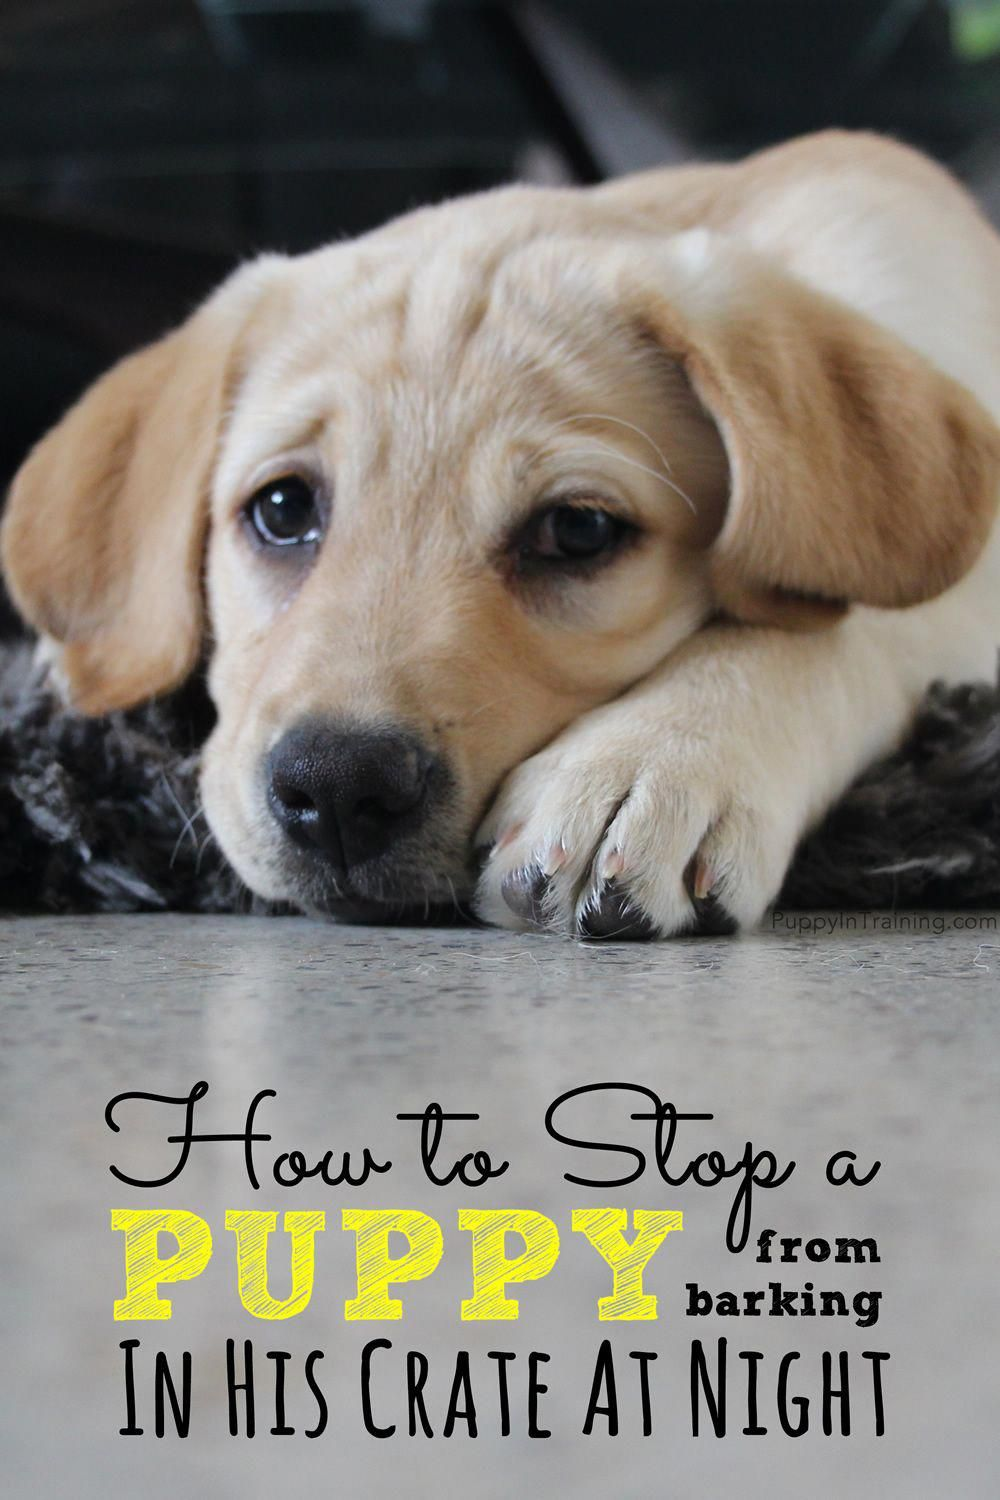 How To Get A Dog To Stop Barking In Cage